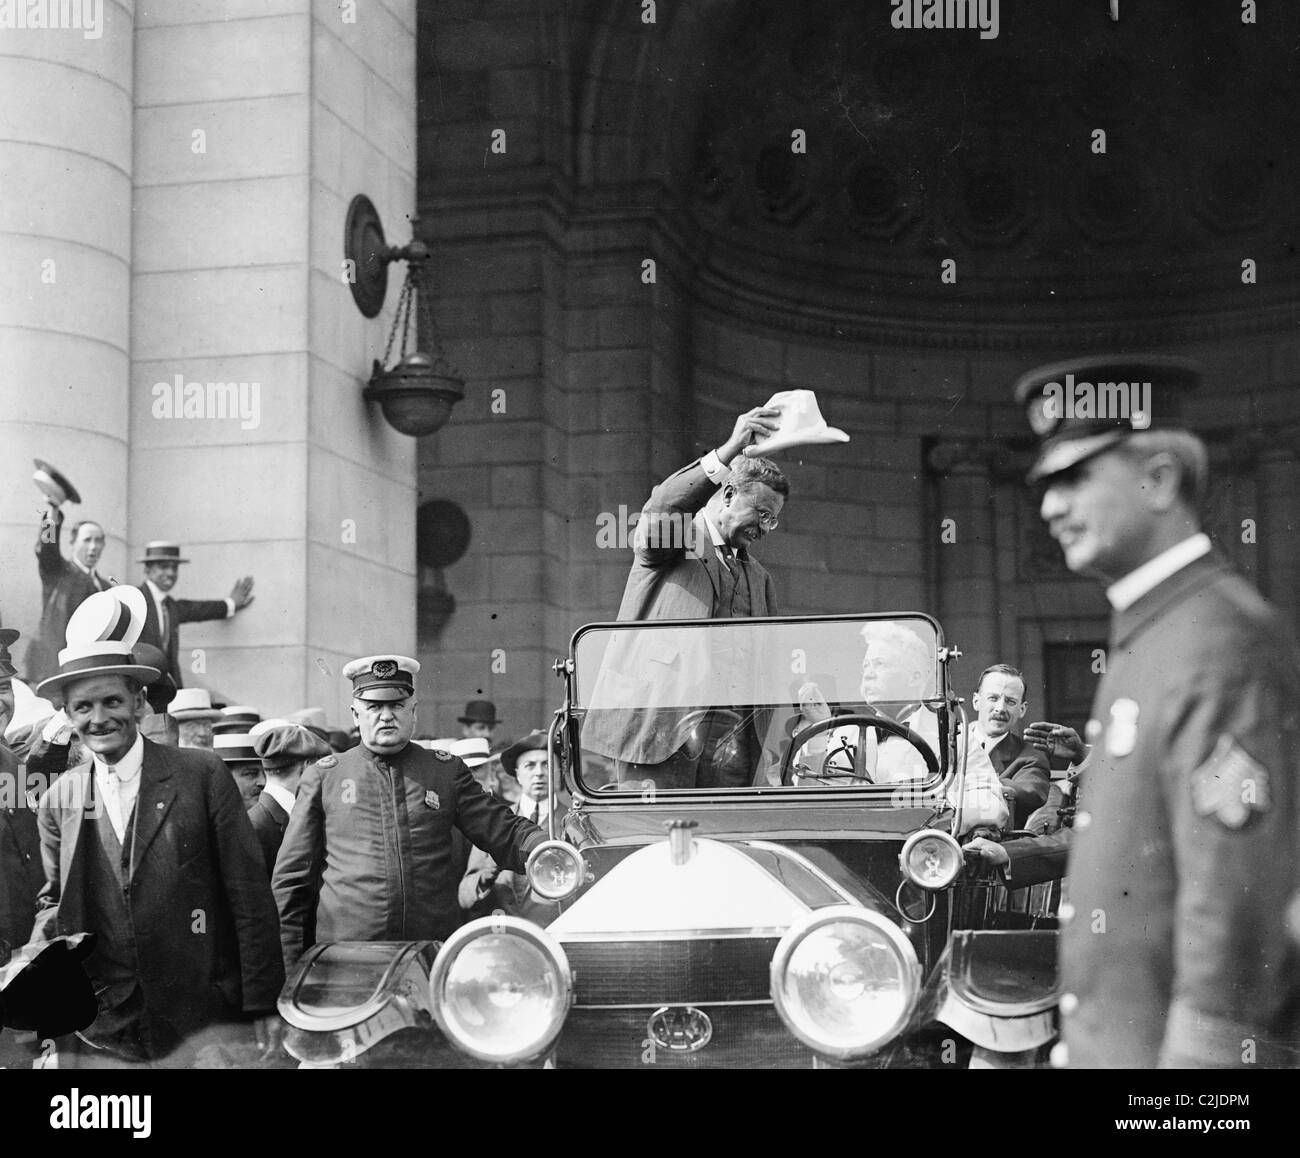 Teddy Roosevelt arriving by car at Union station, DC - Stock Image